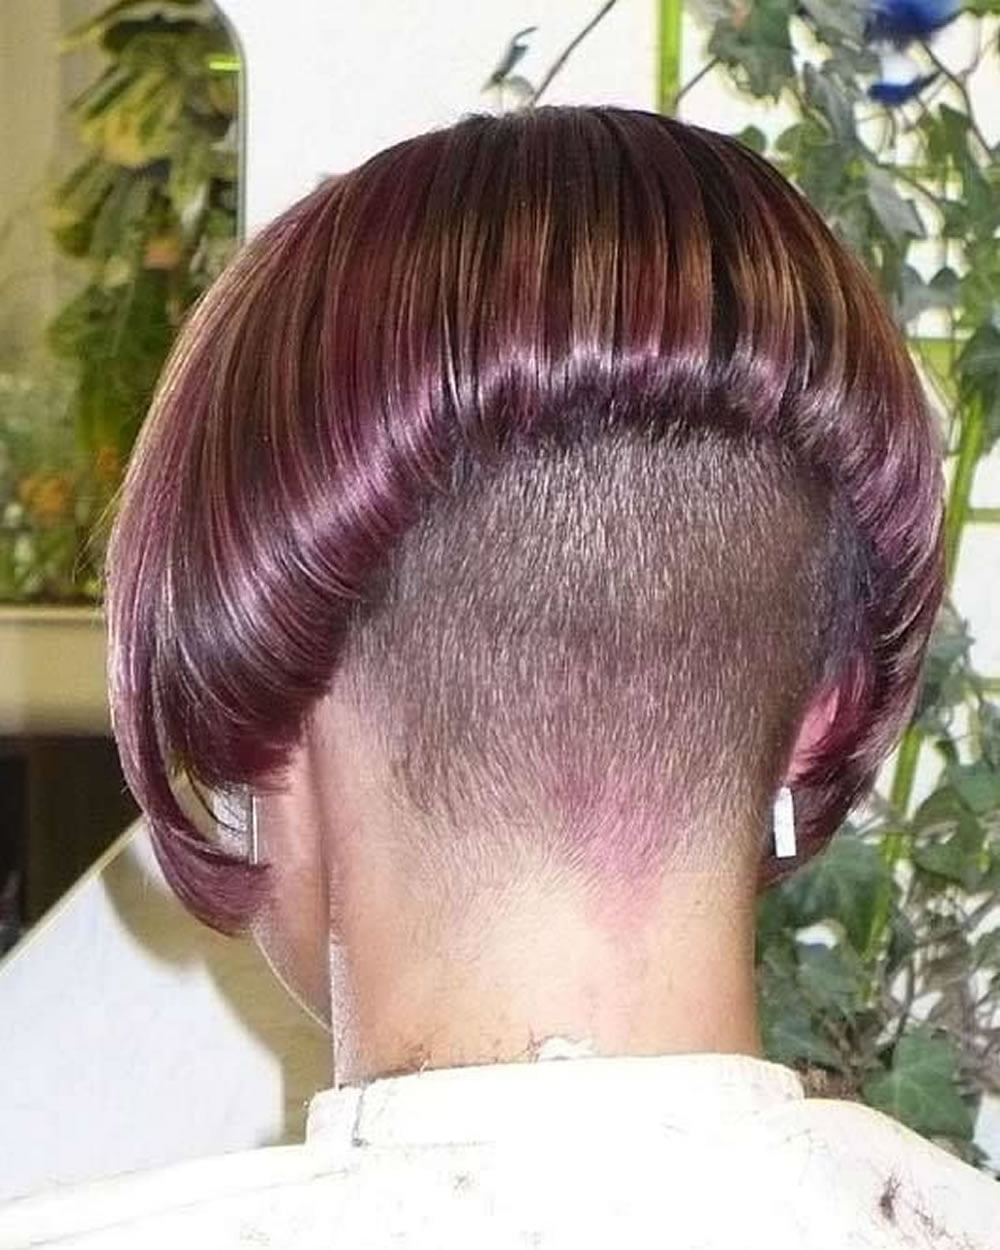 Remarkable, rather cut hair shaved woman magnificent idea